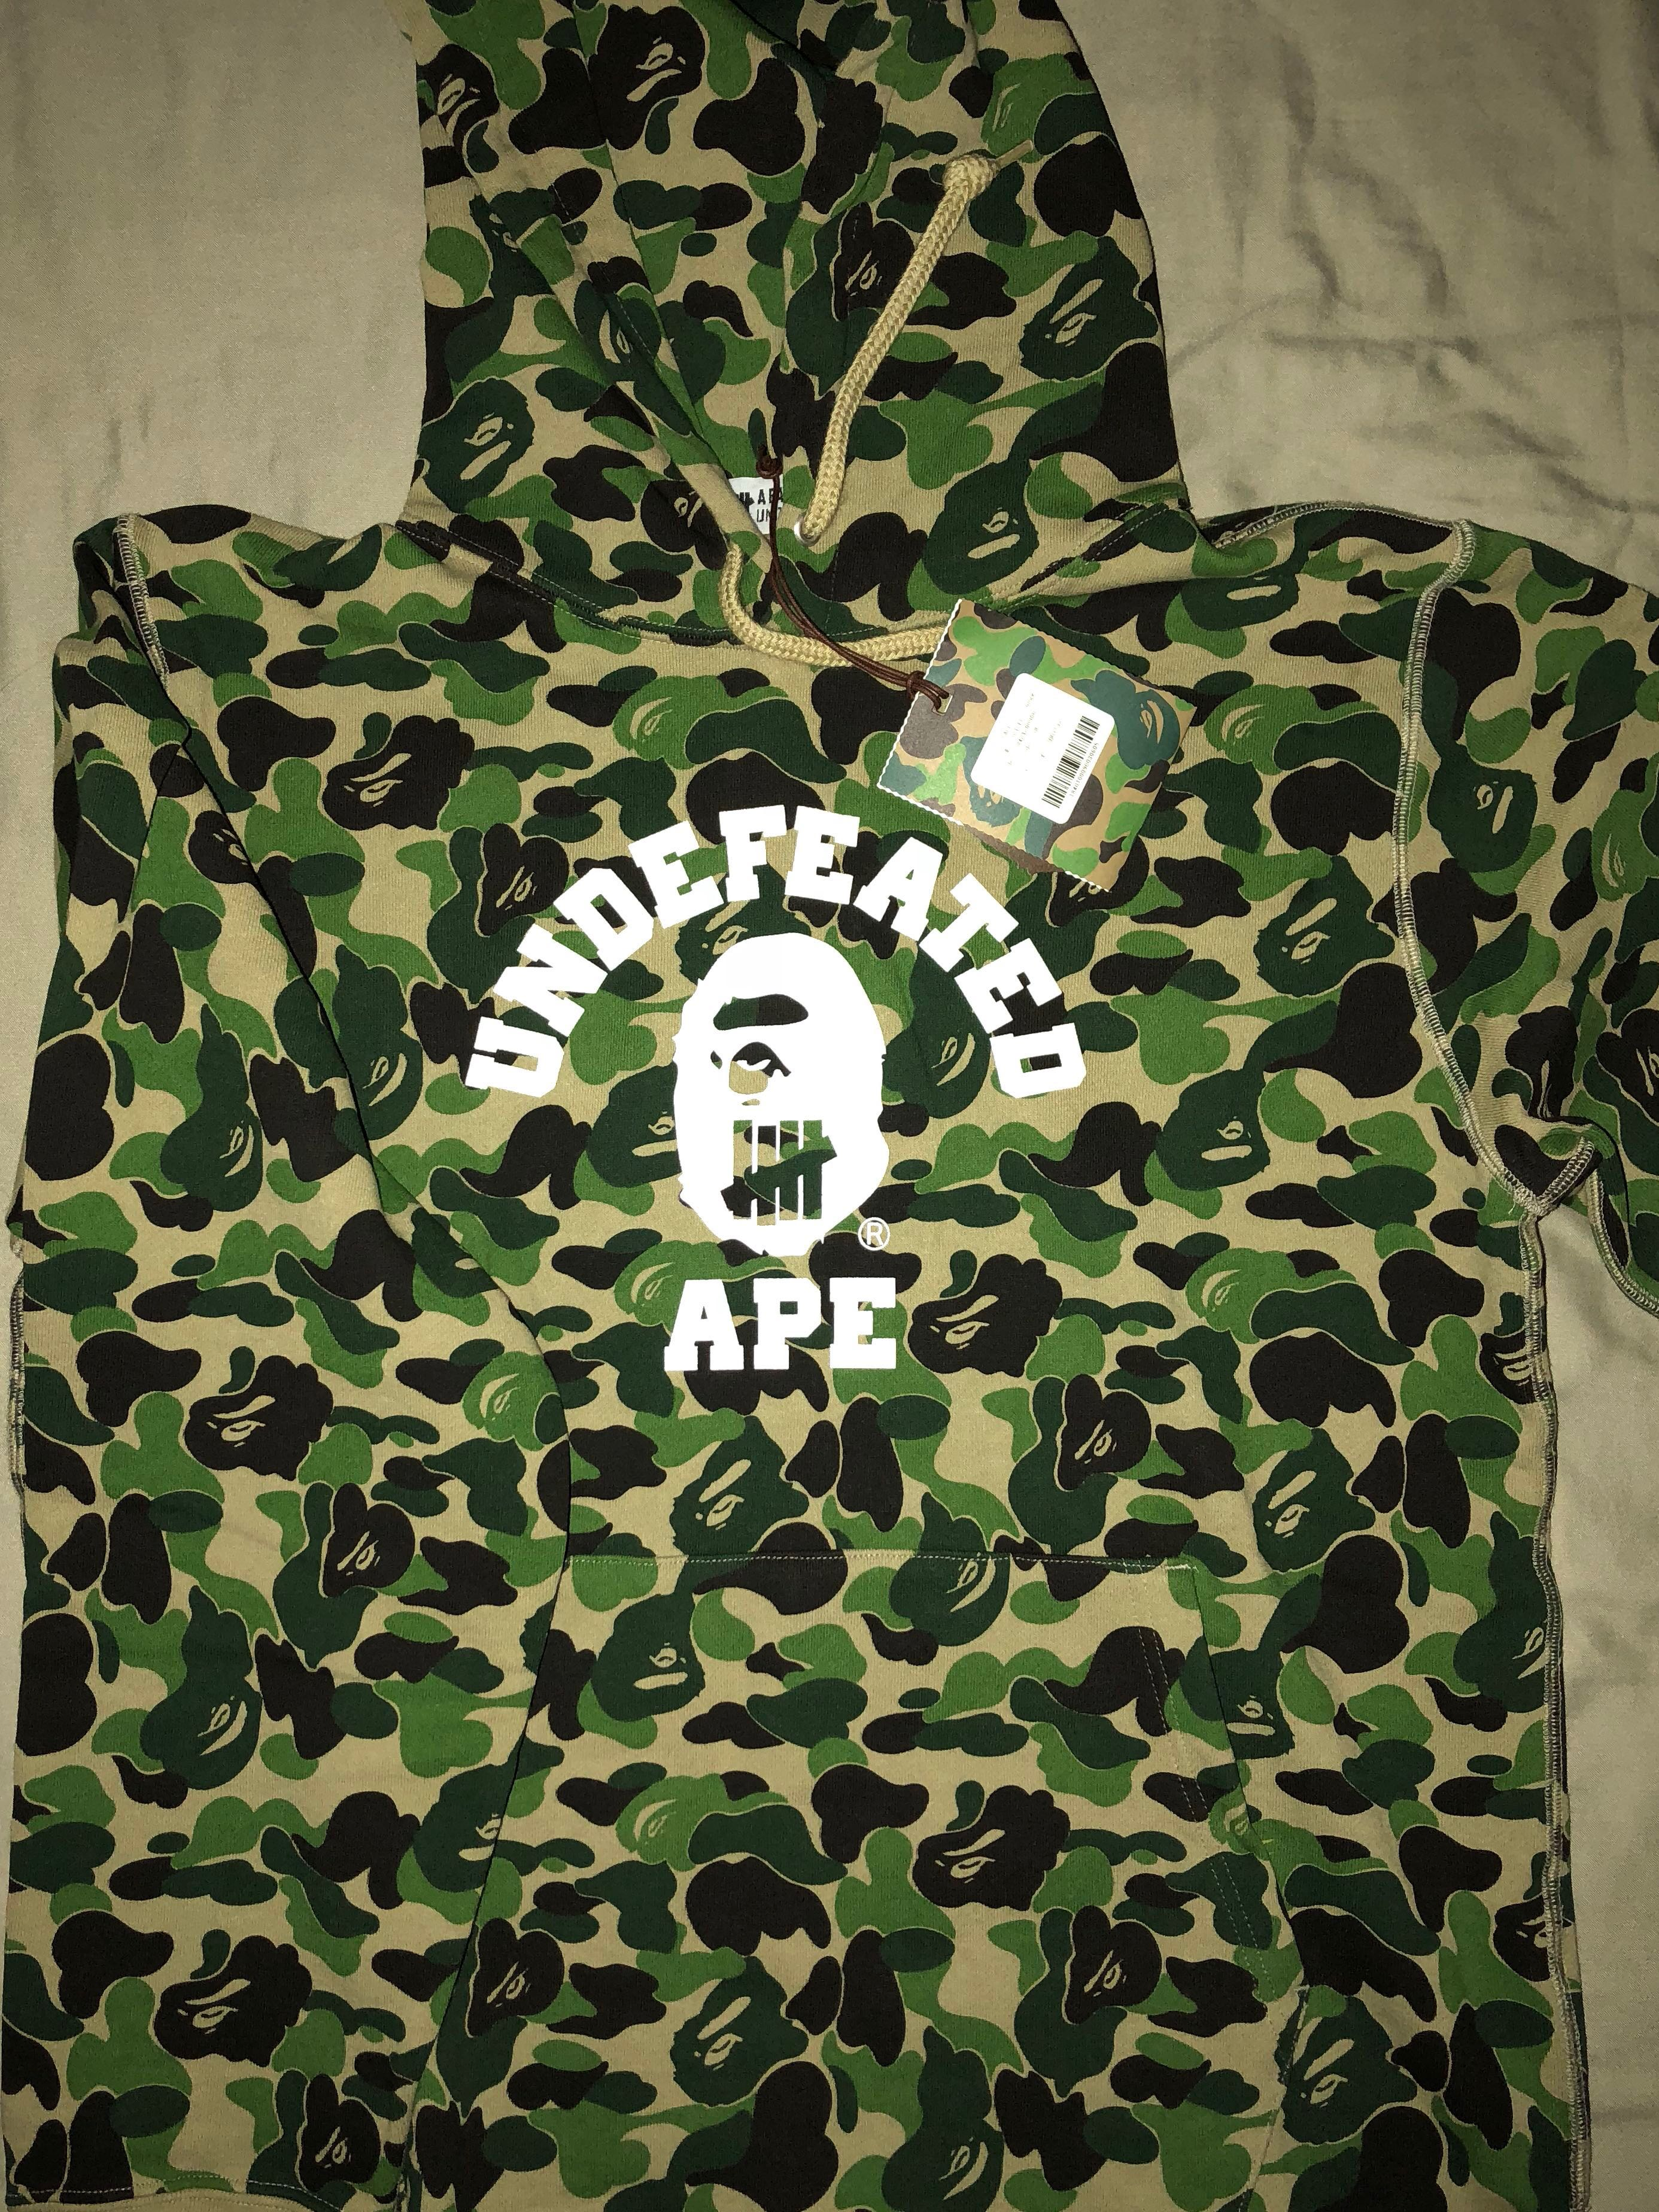 15529134 Bape x undefeated Hoodie, Men's Fashion, Clothes, Outerwear on Carousell